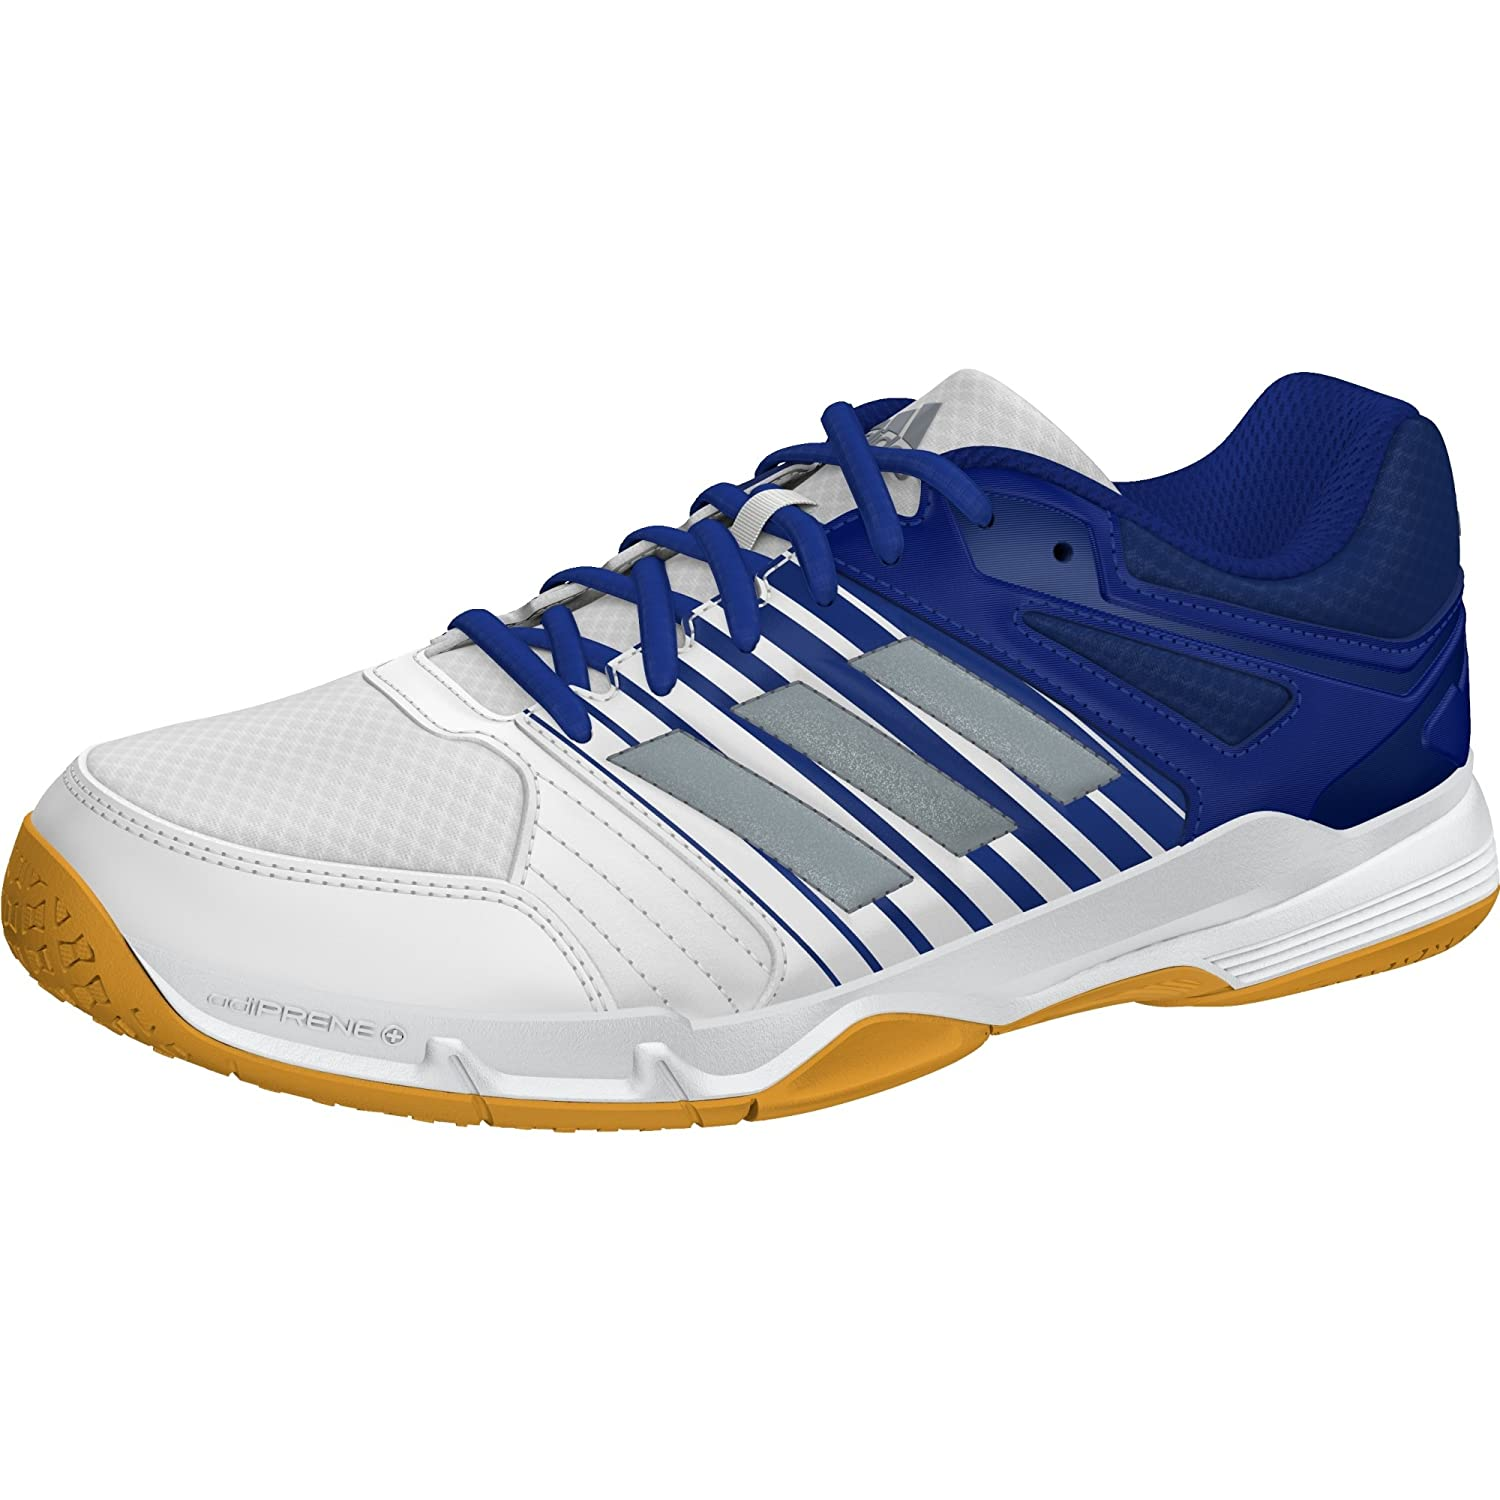 46 De Zapatillas S78285 8 Speedcourt Performance Adidas Handball 23 nwqfU0BqZP